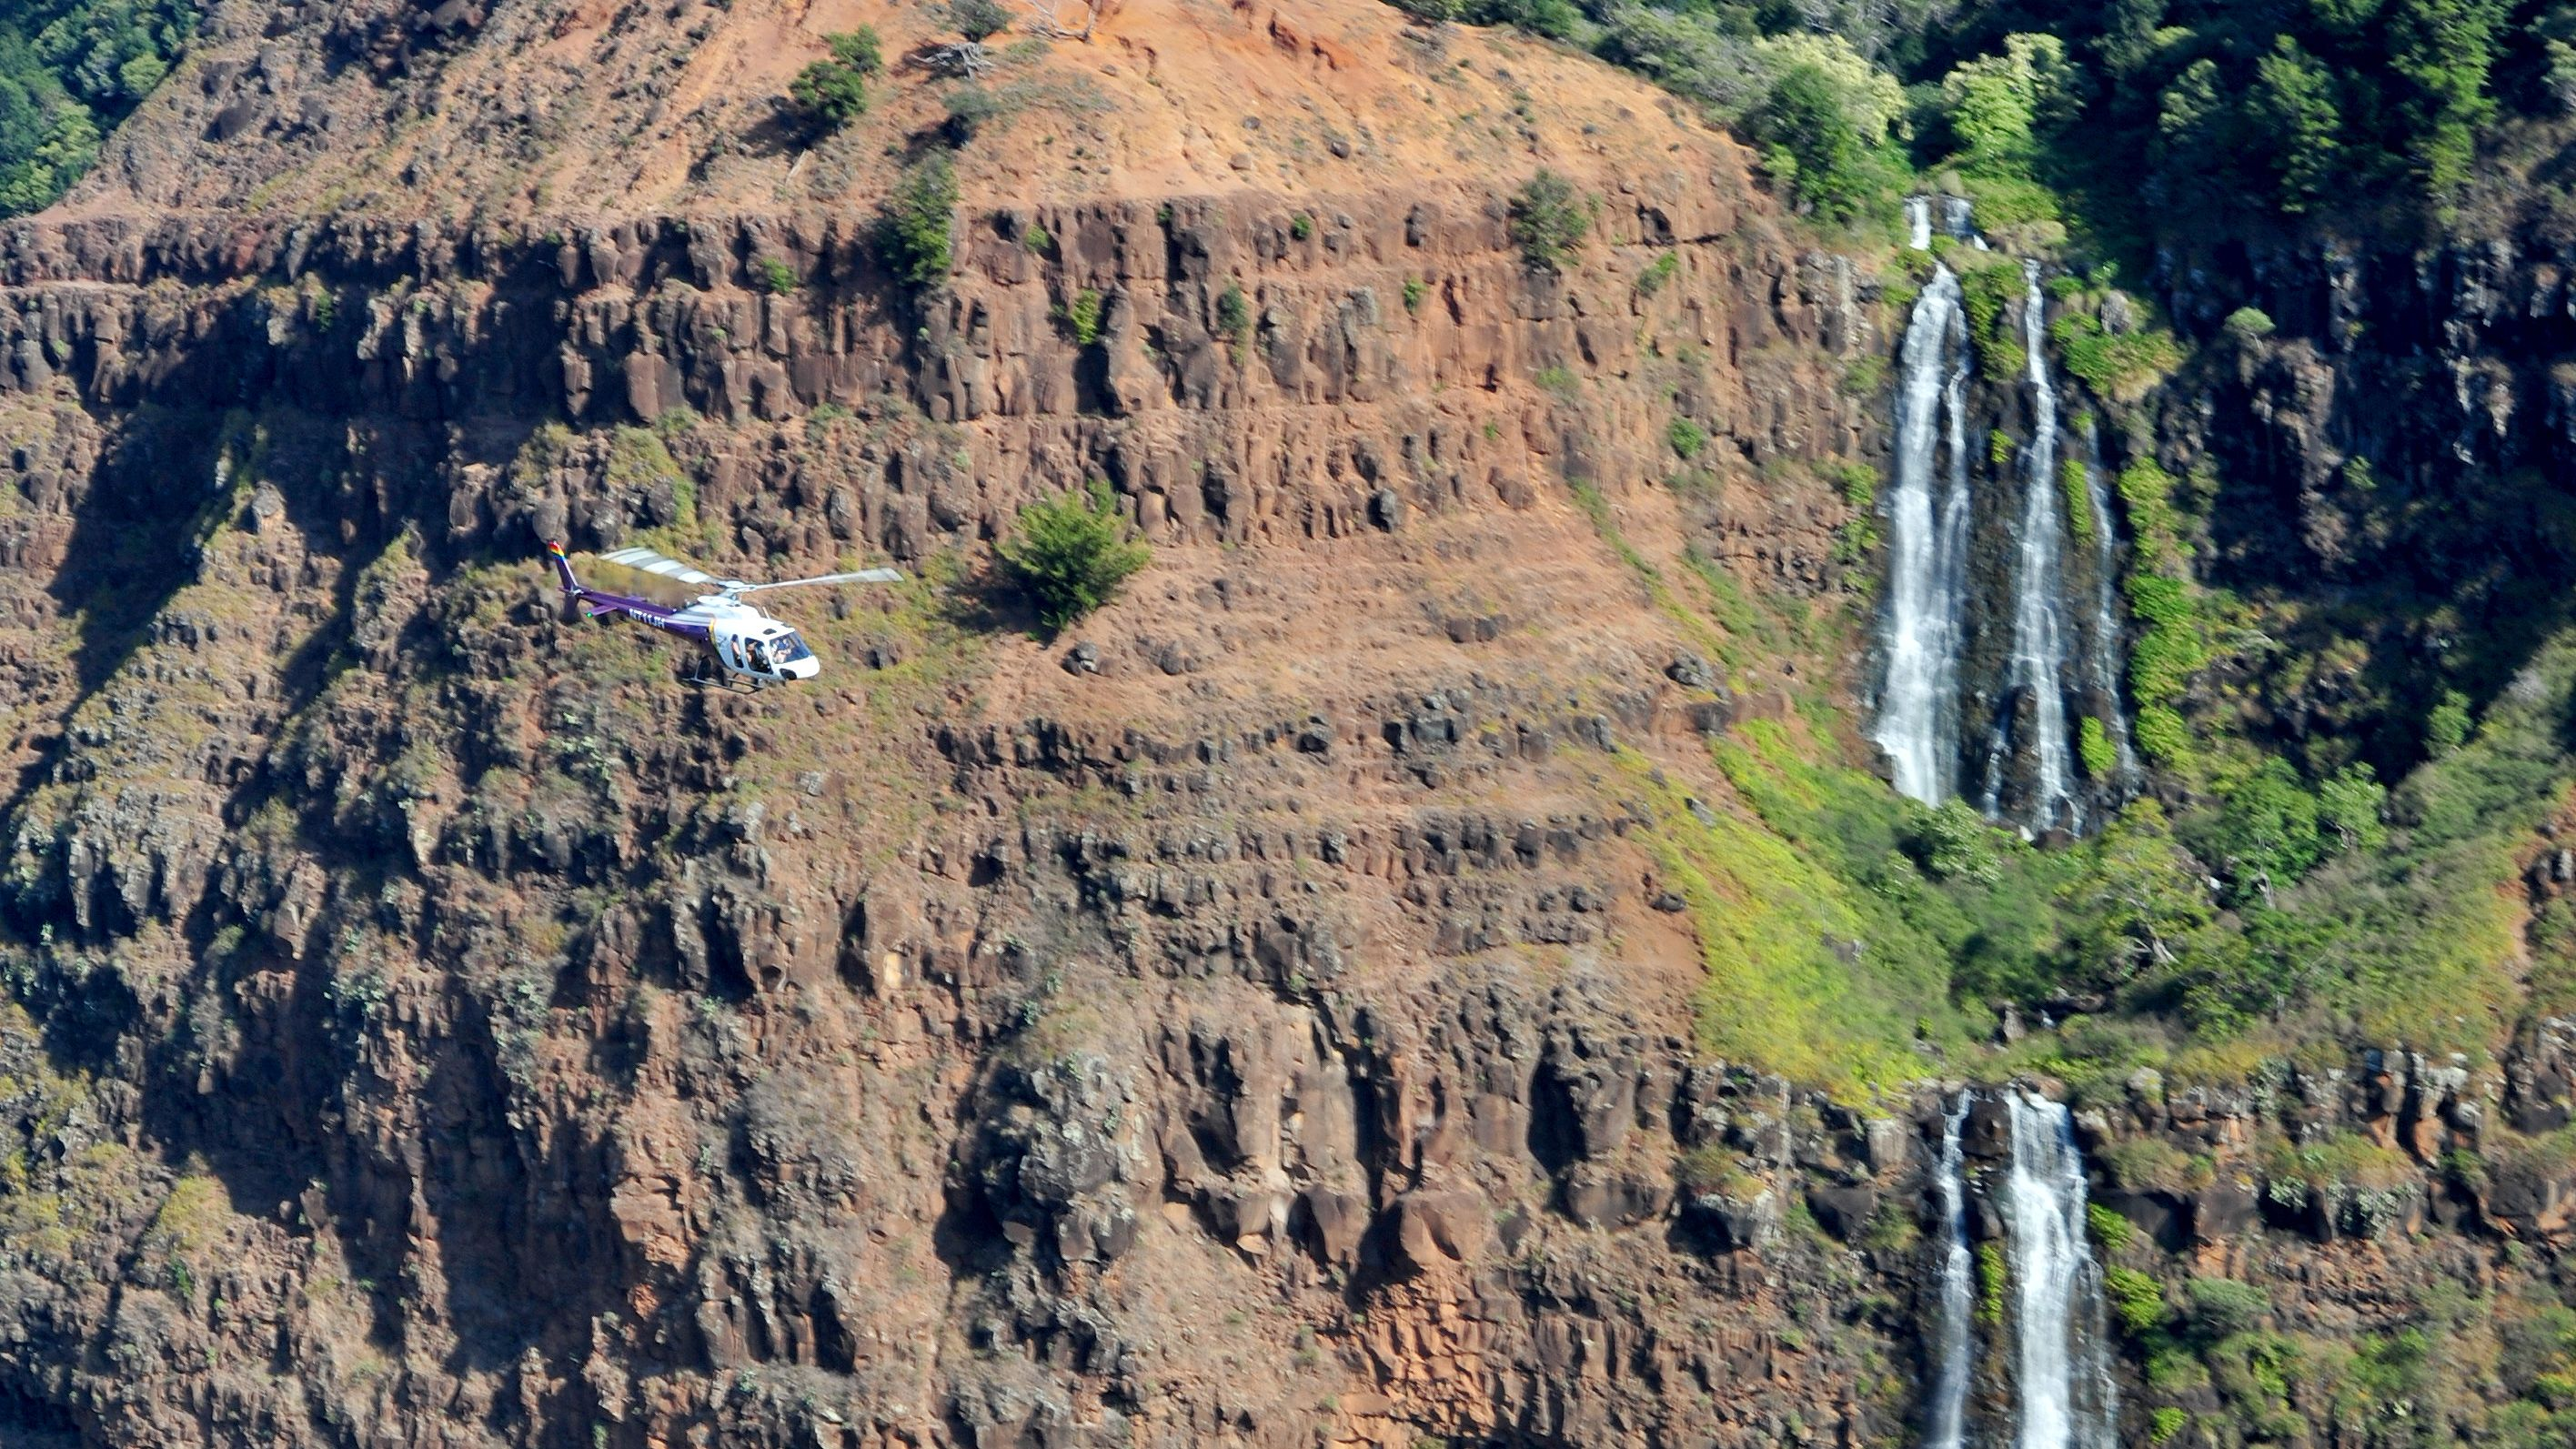 Stunning aerial view of Wailua Falls in Kauai